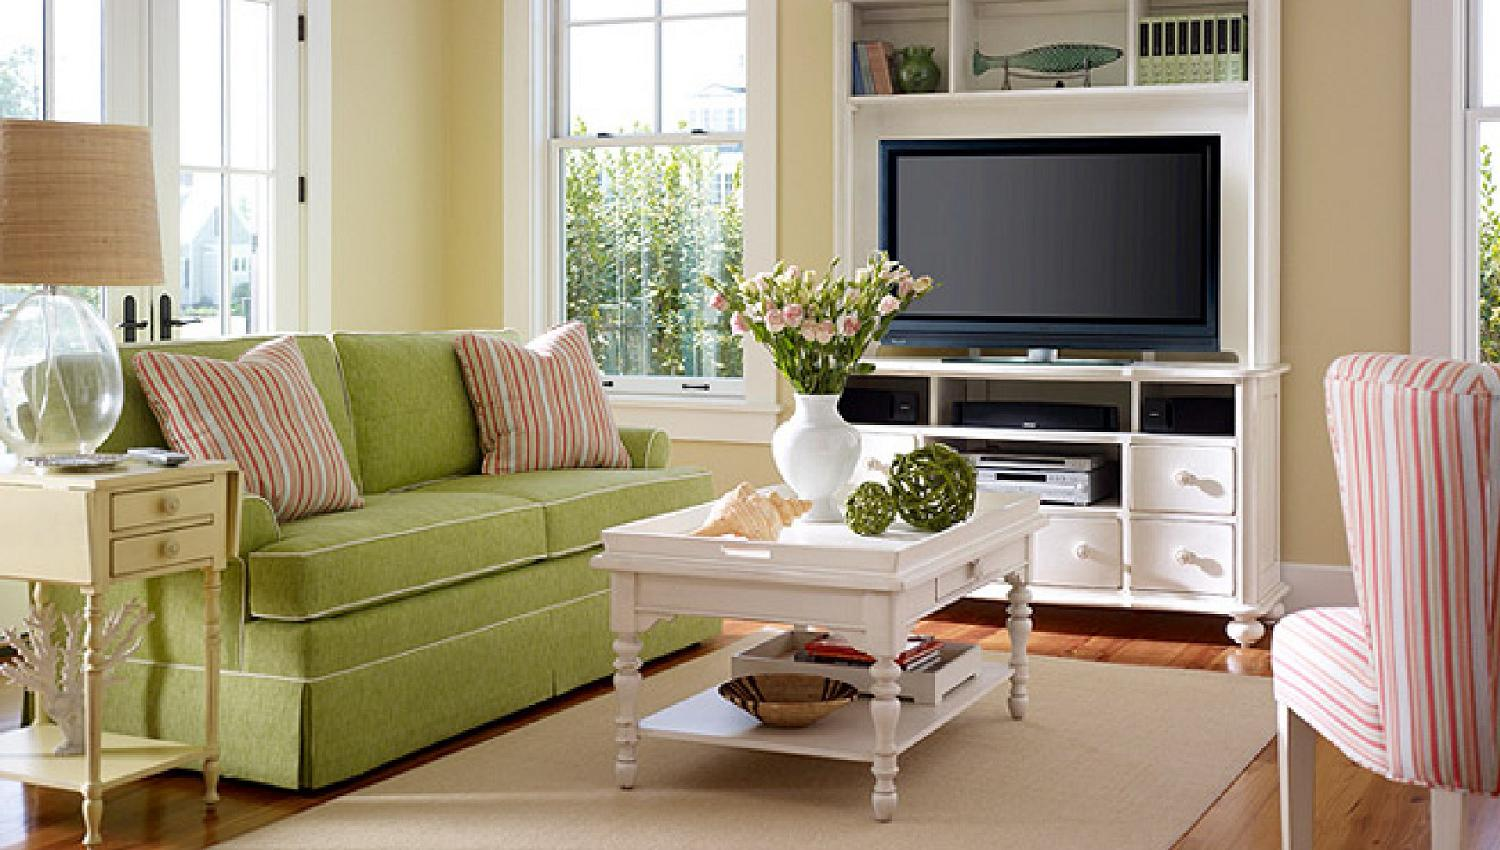 Top Country Living Room Decorating 1500 x 850 · 176 kB · jpeg